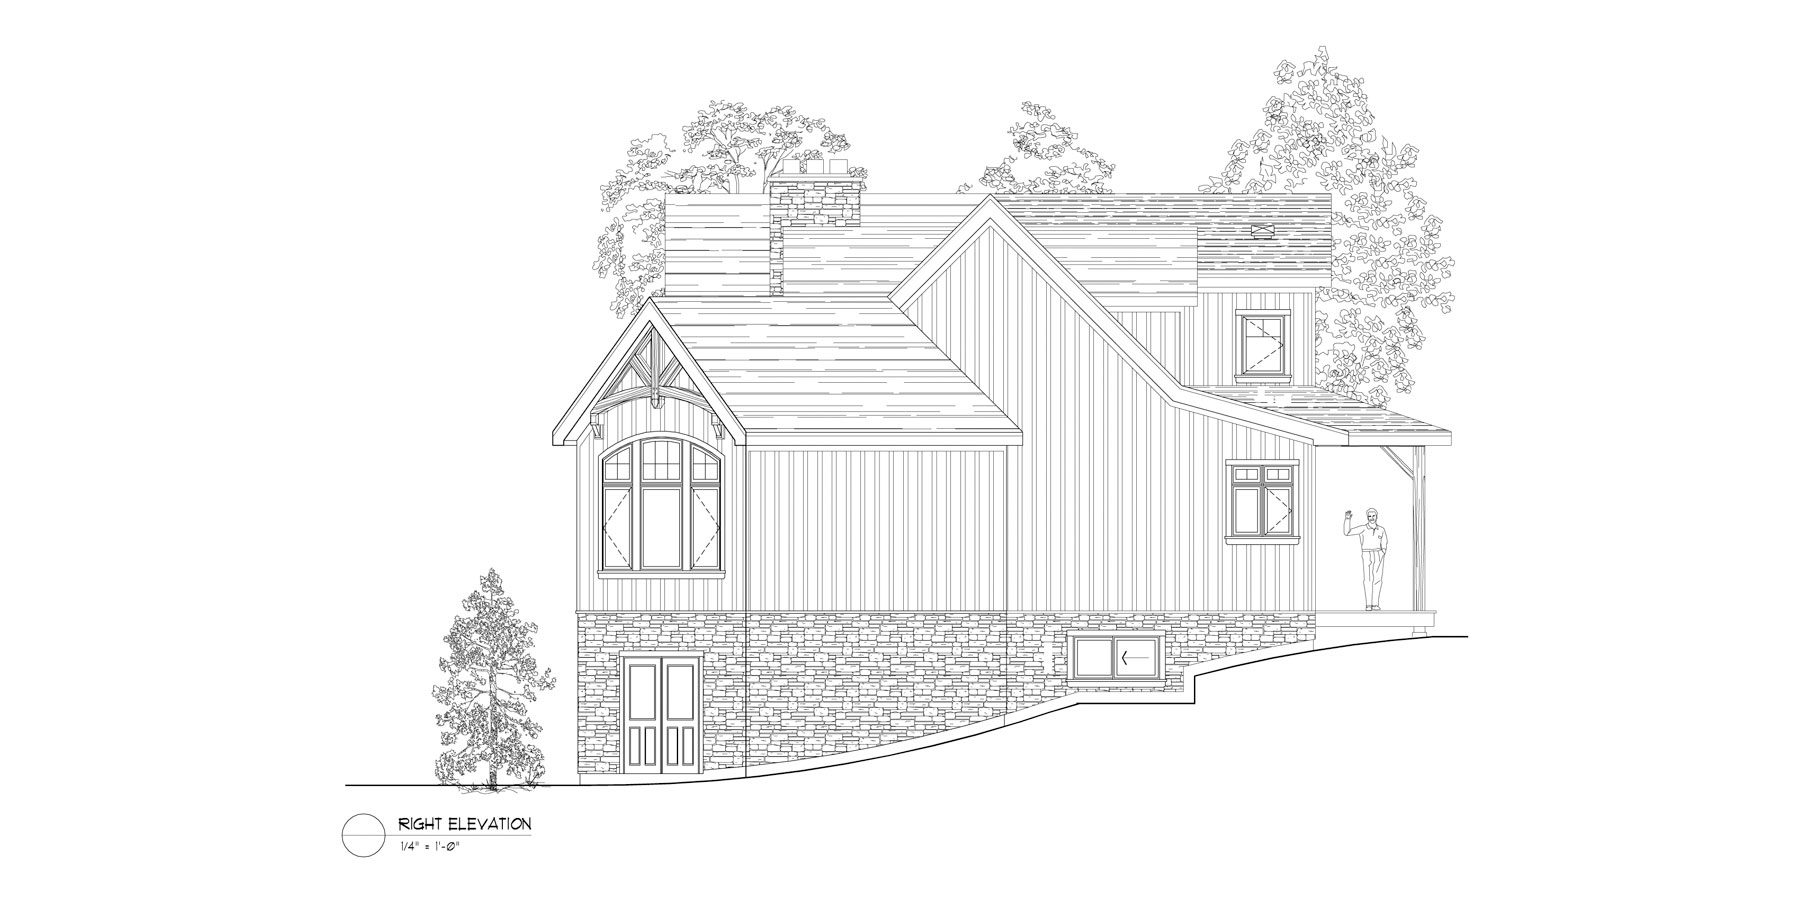 Normerica Timber Frames, House Plan, The Fremont 3582, Right Elevation